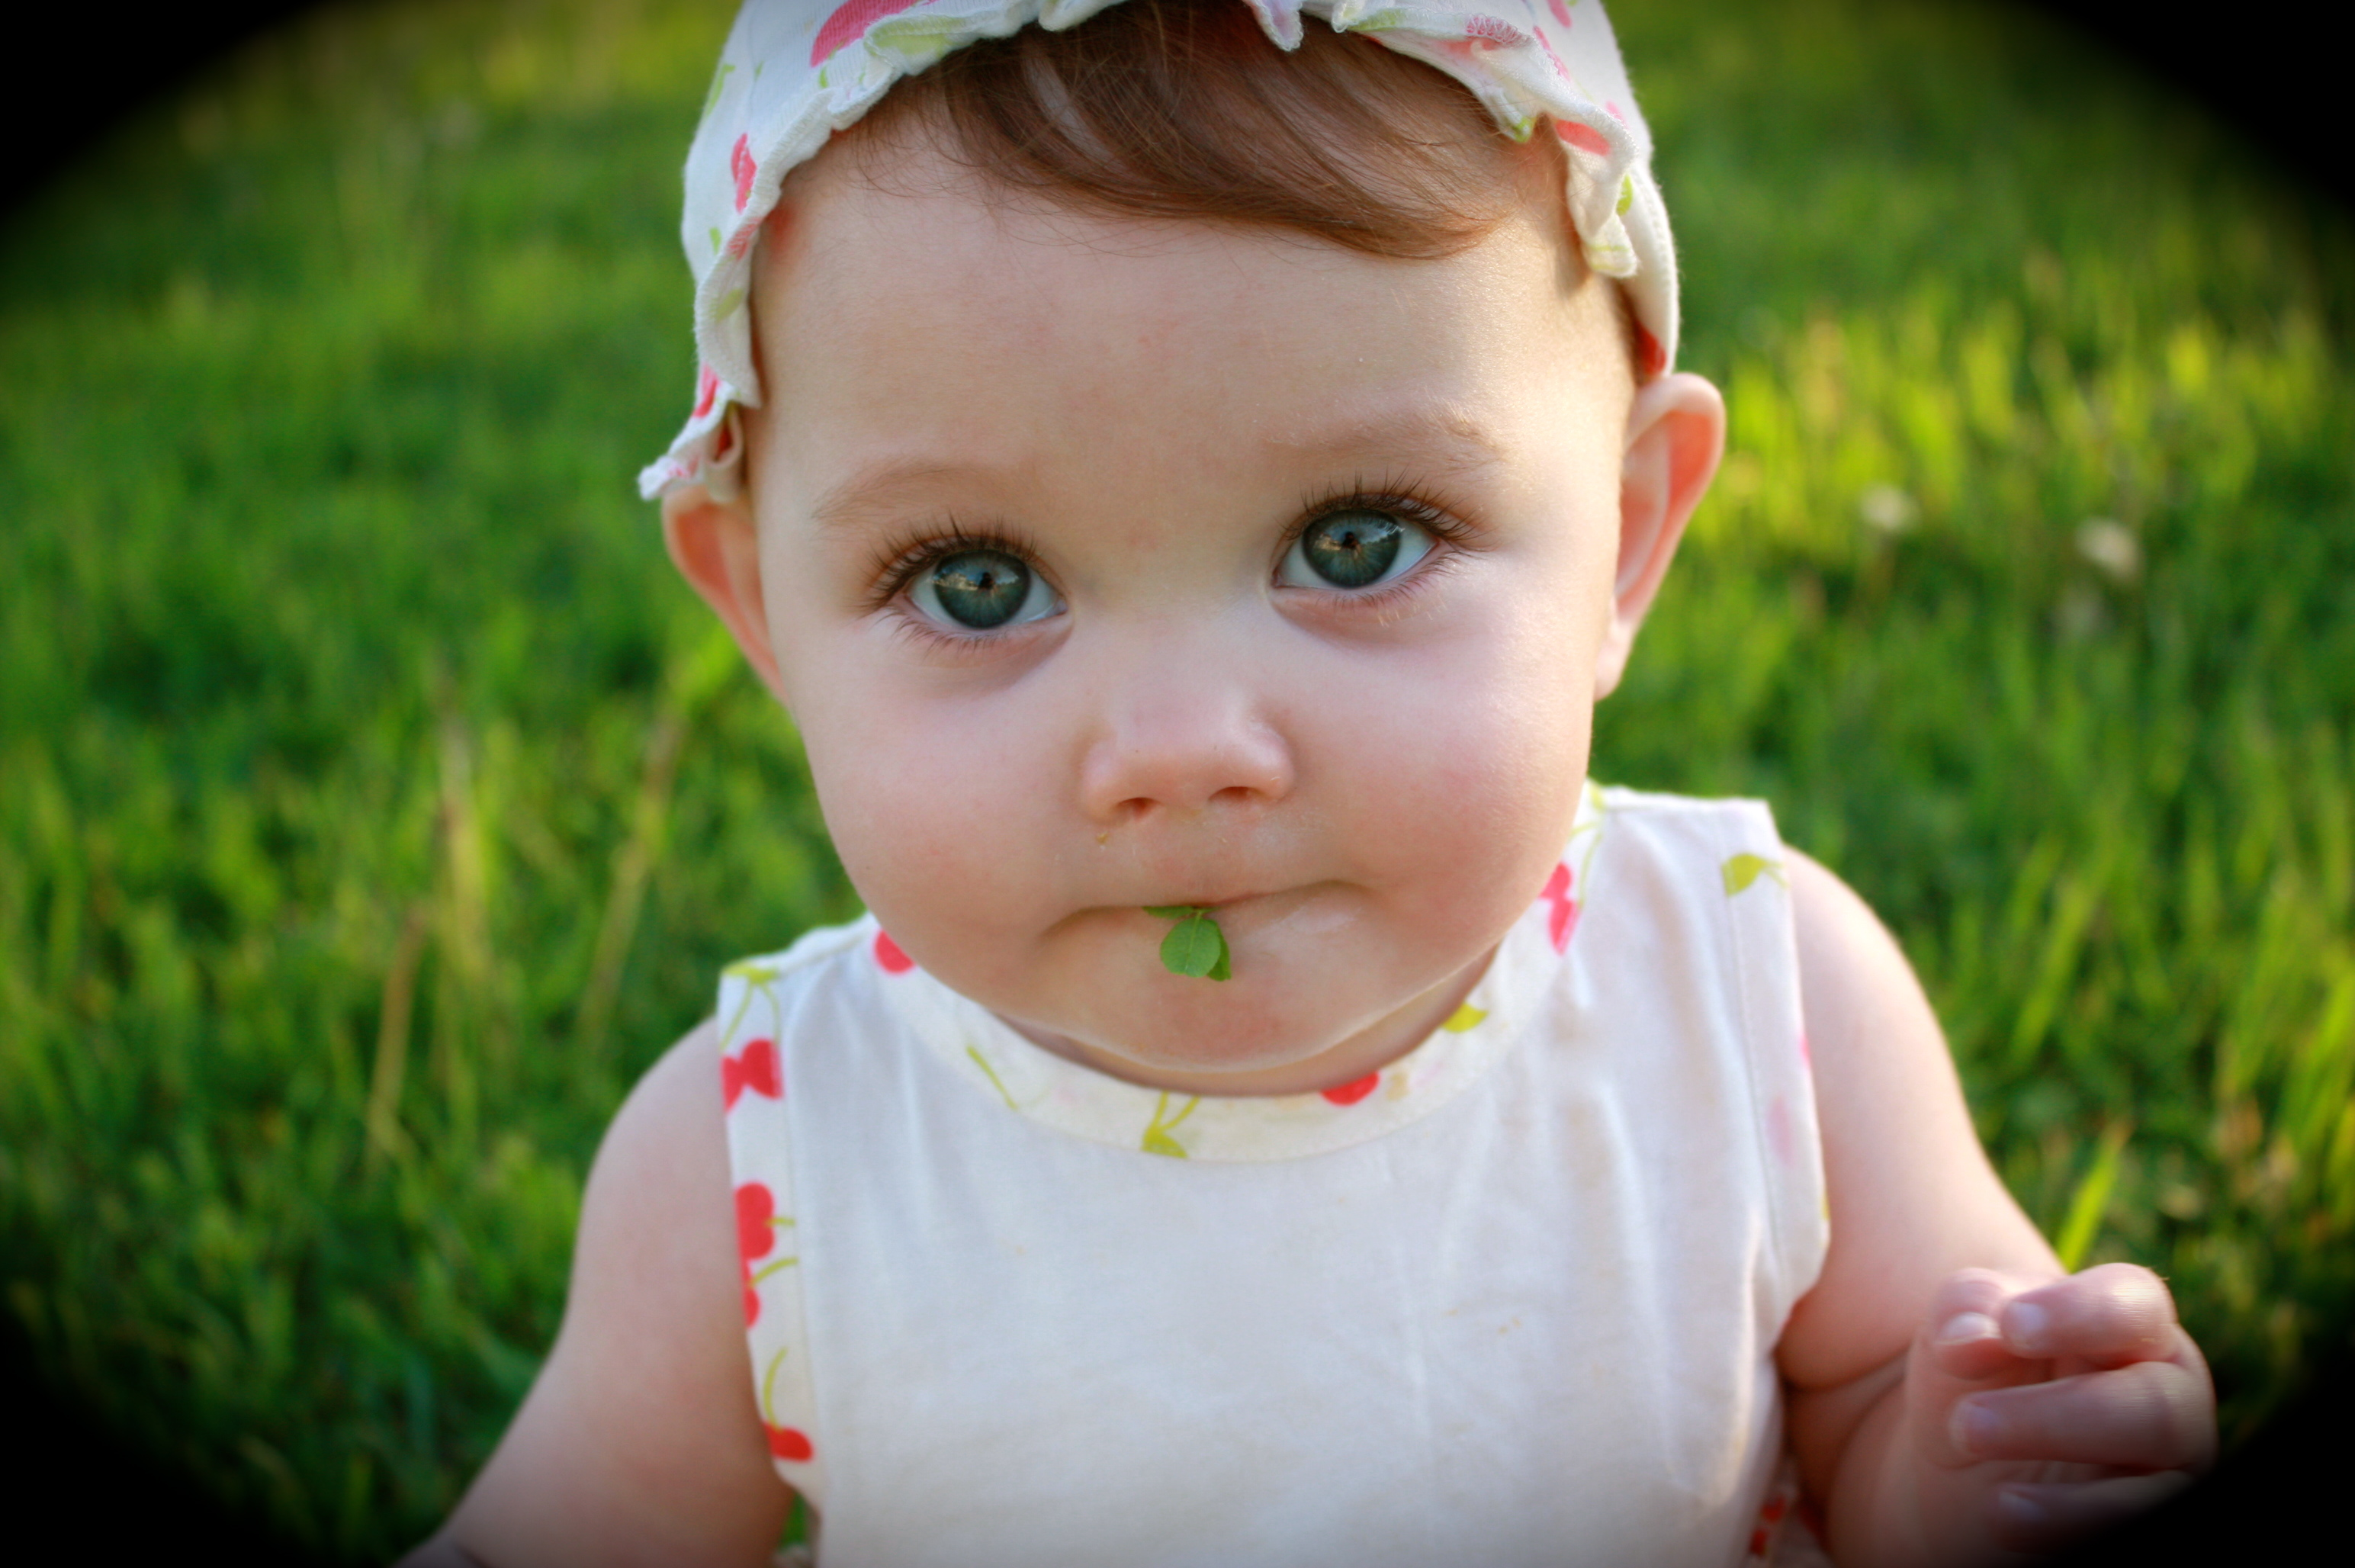 Baby Girl With Green Eyes And Brown Hair Pictures to Pin ...